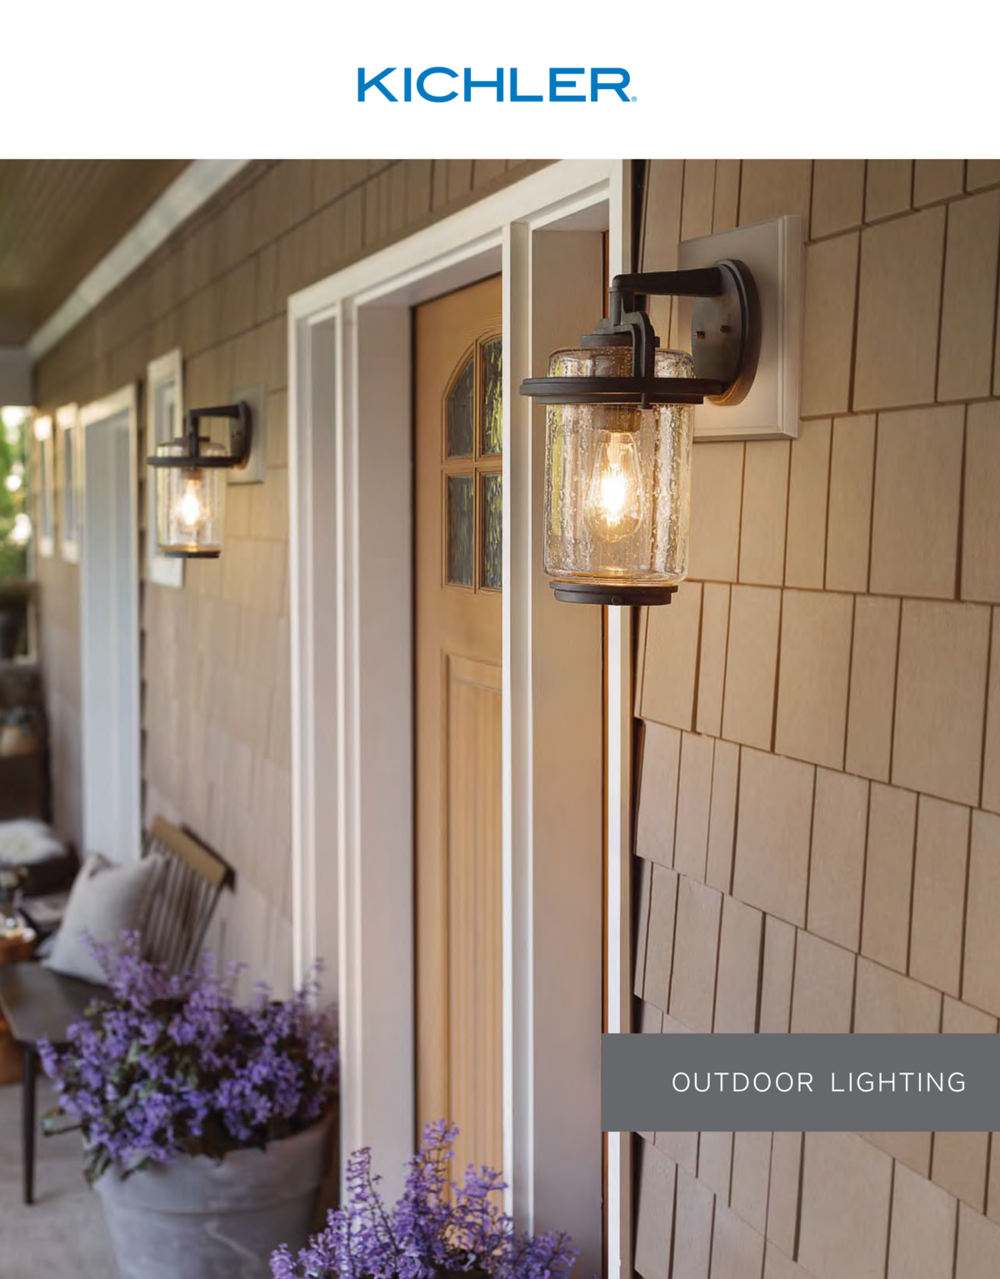 kichler outdoor lighting -